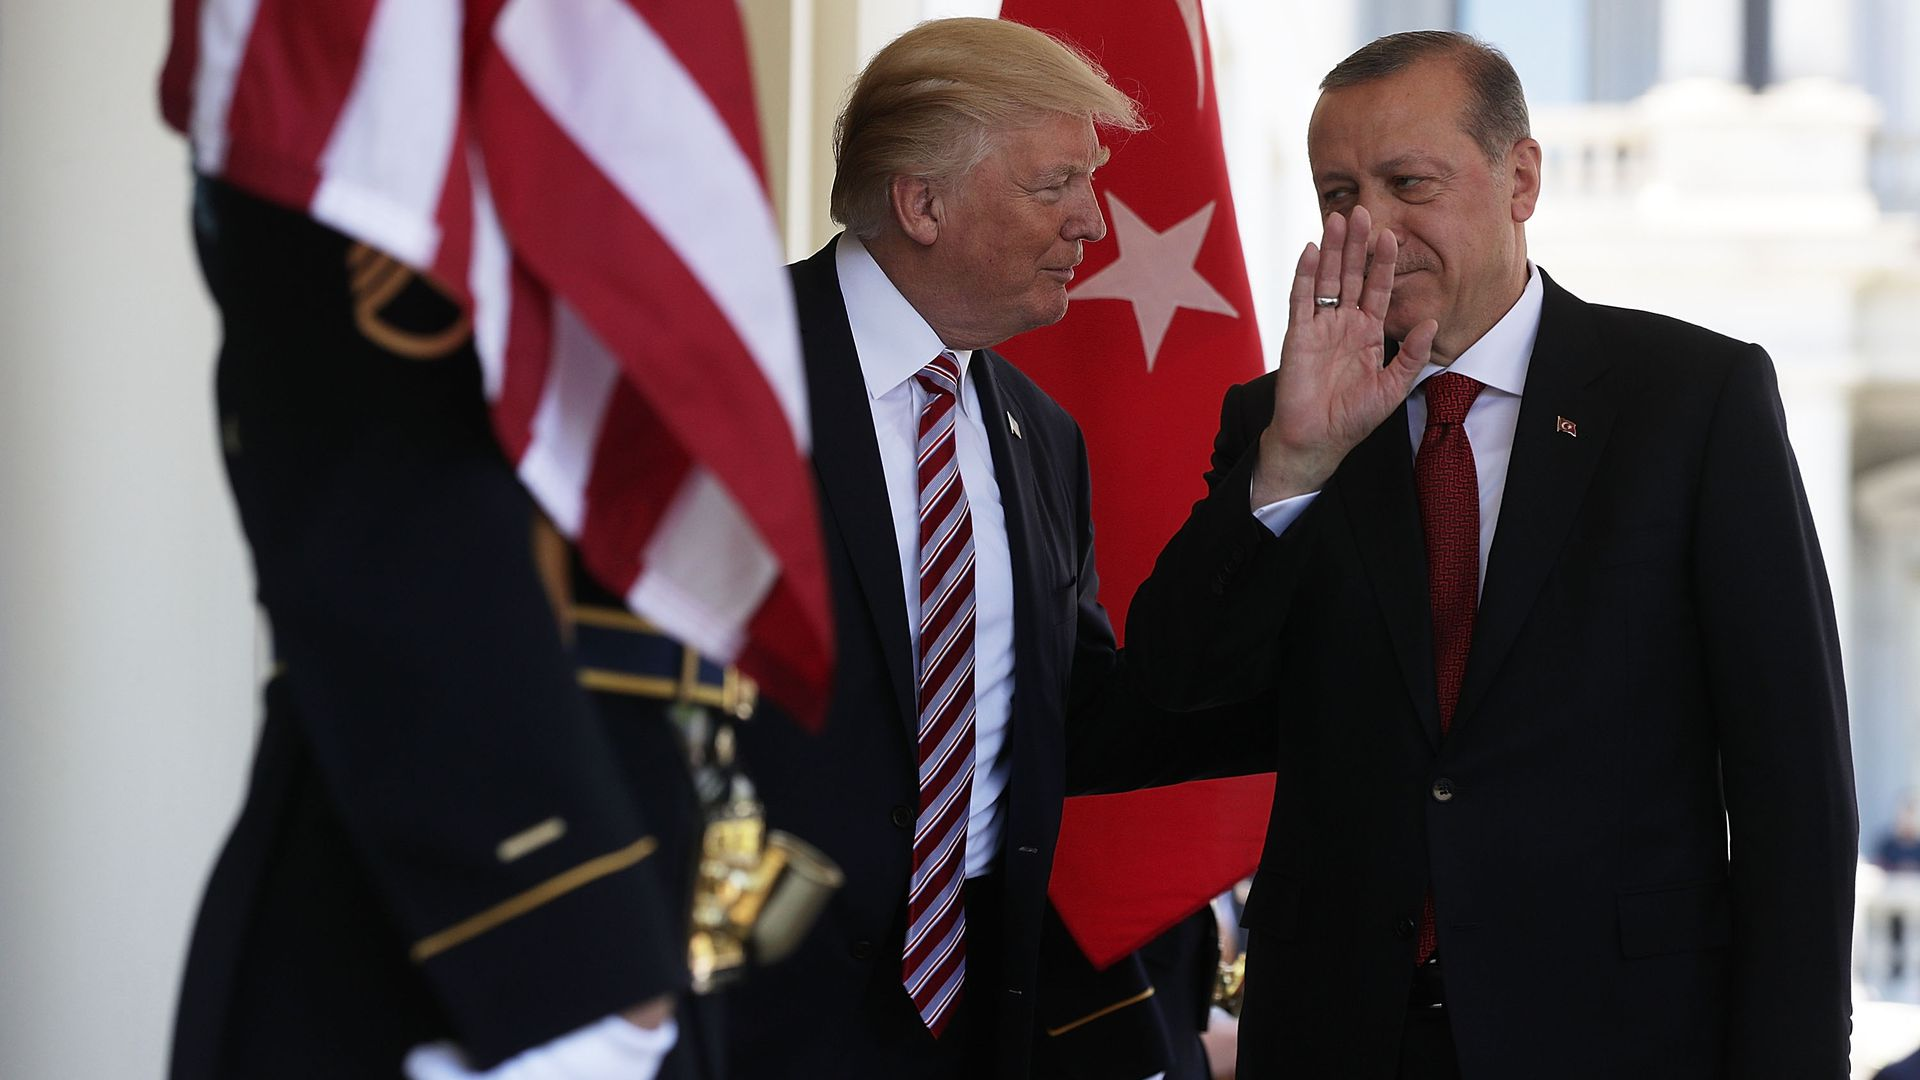 In this image, Trump and the Turkish president speak to each other behind flags